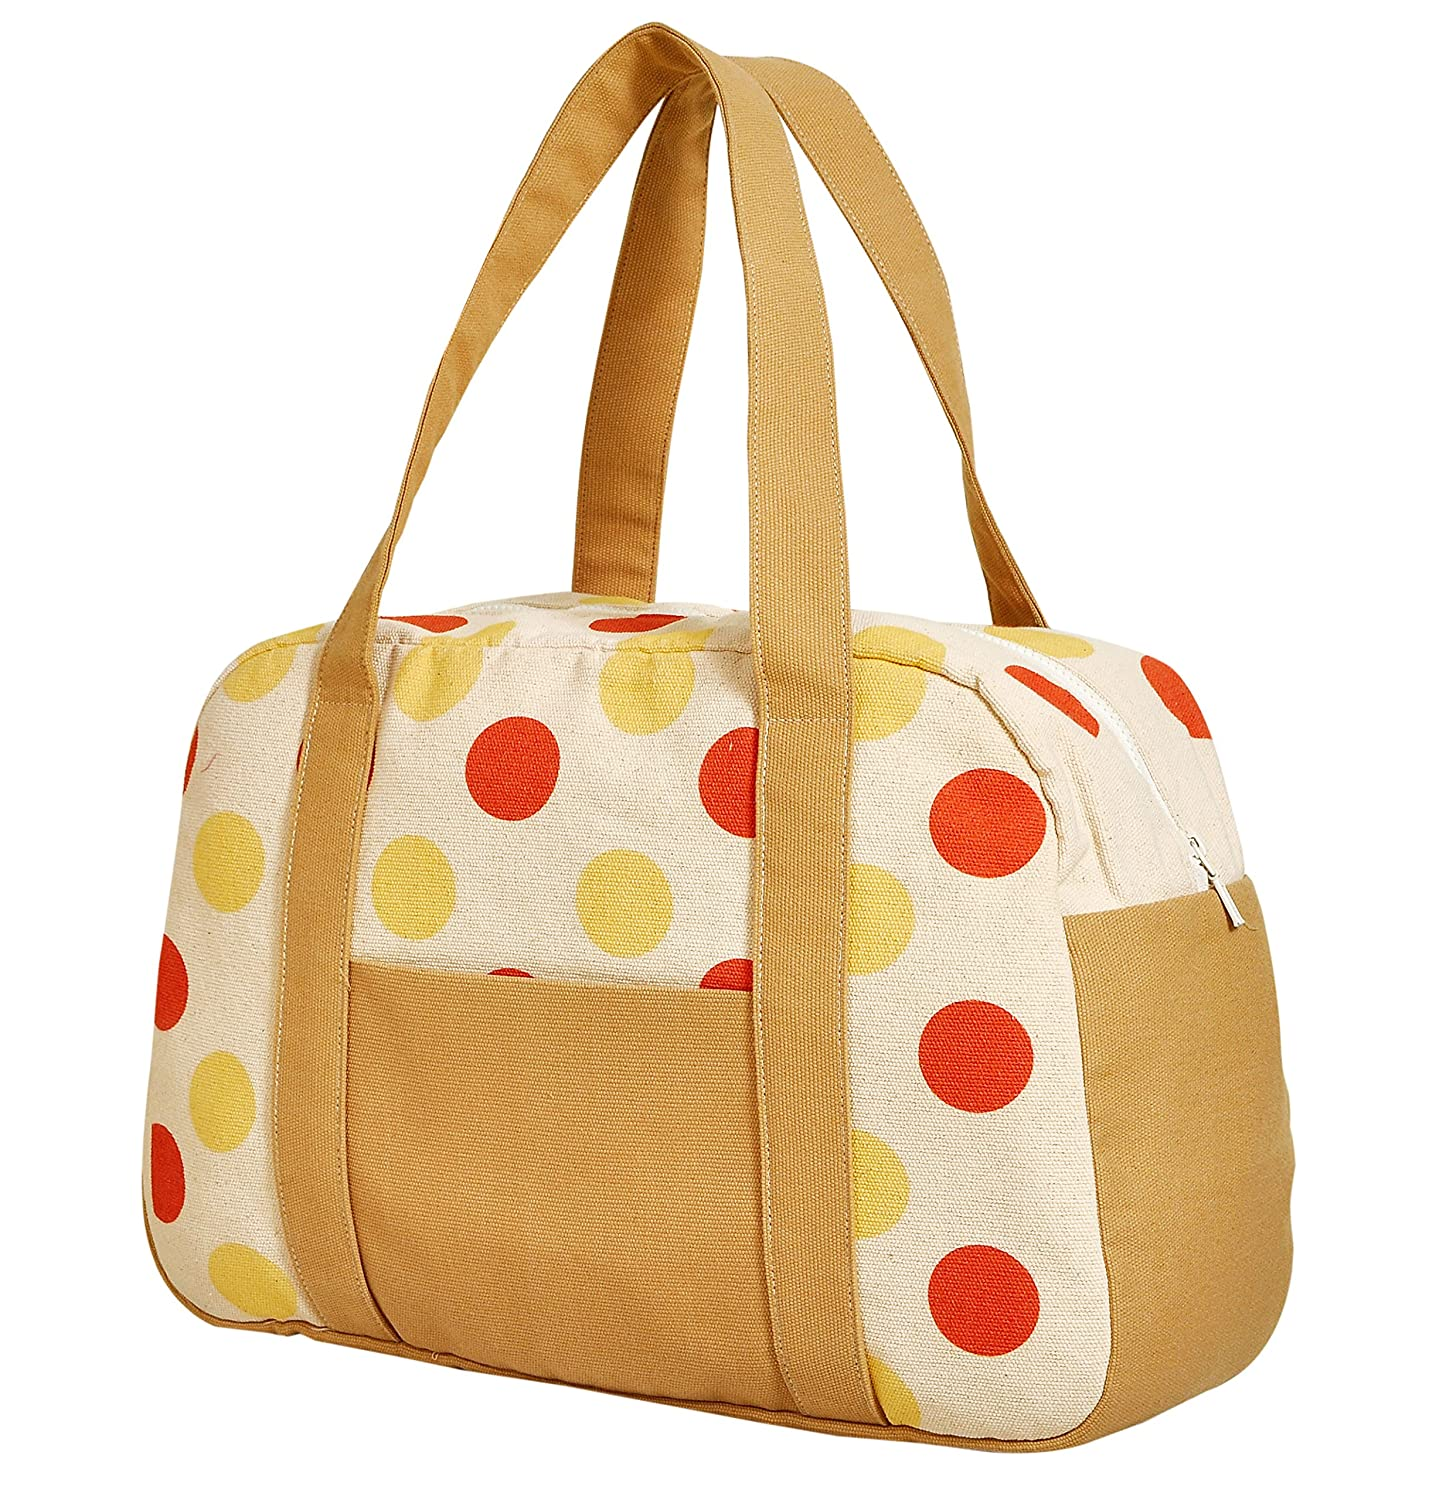 Womens Vintage Patterns Printed Canvas Duffel Travel Bags WAS/_19 /…